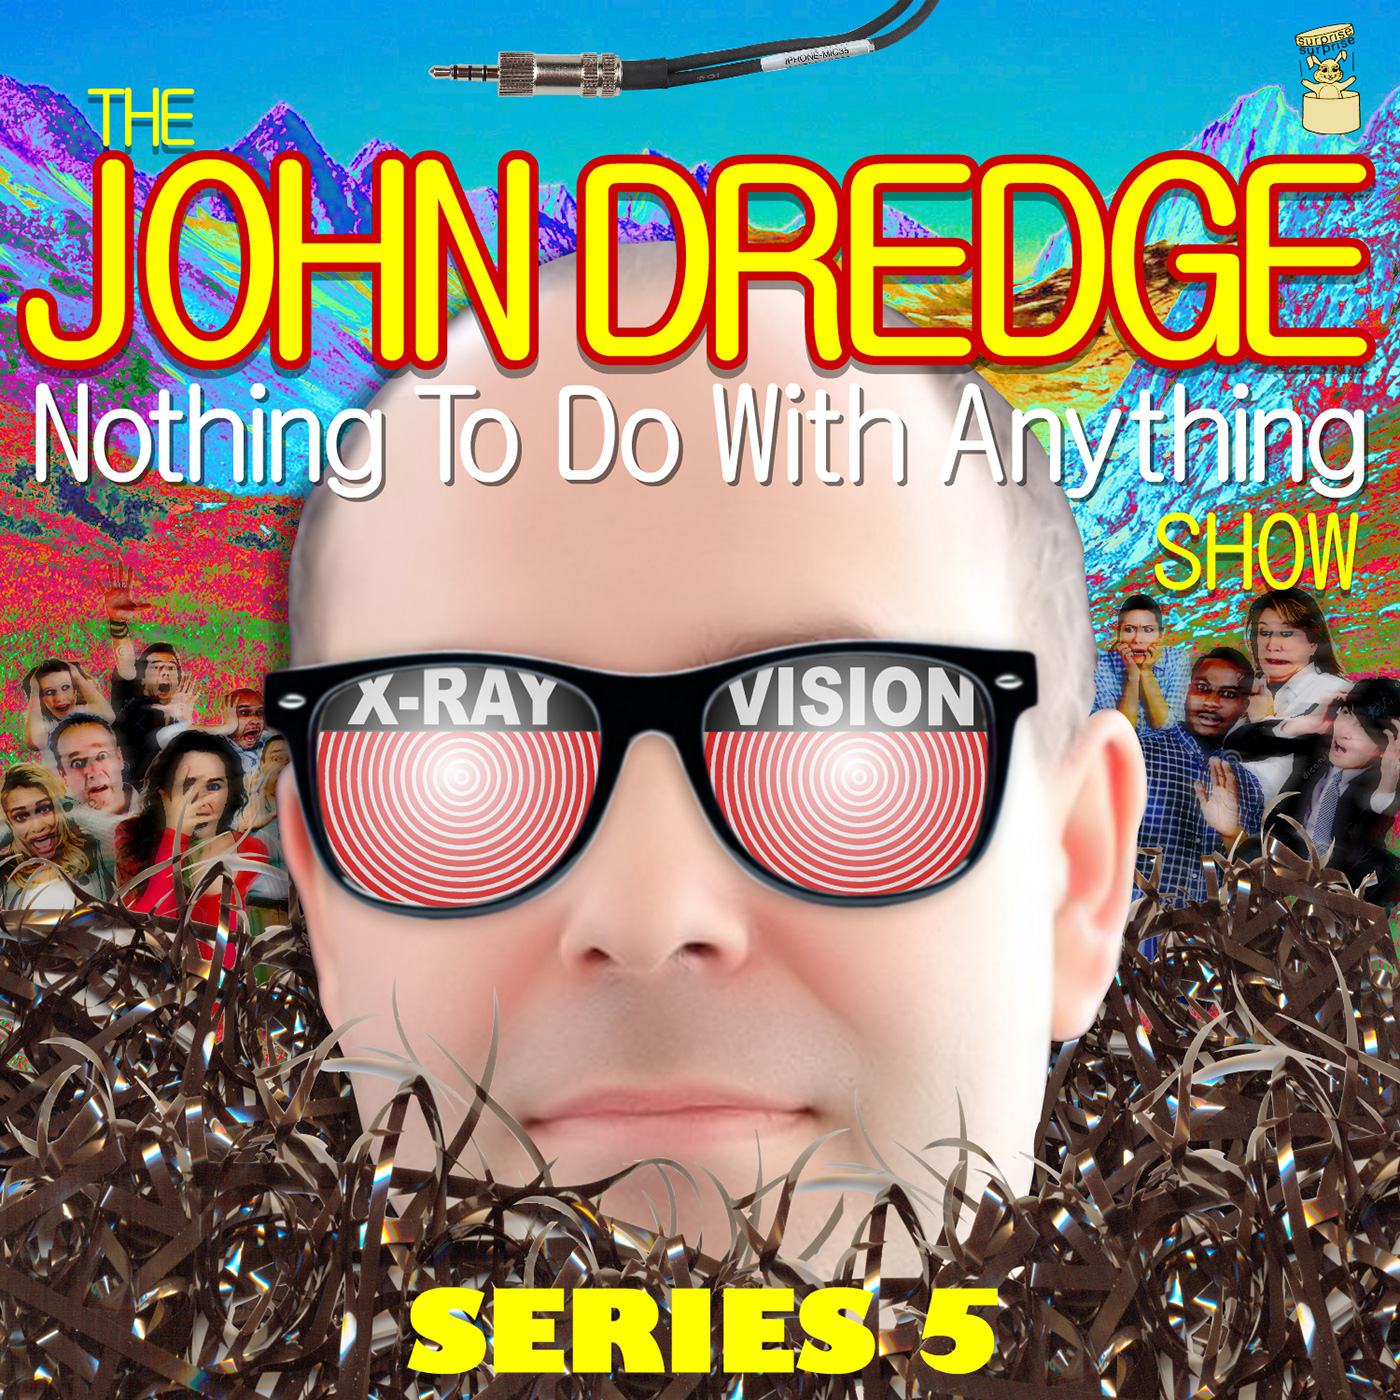 The John Dredge Nothing To Do With Anything Show